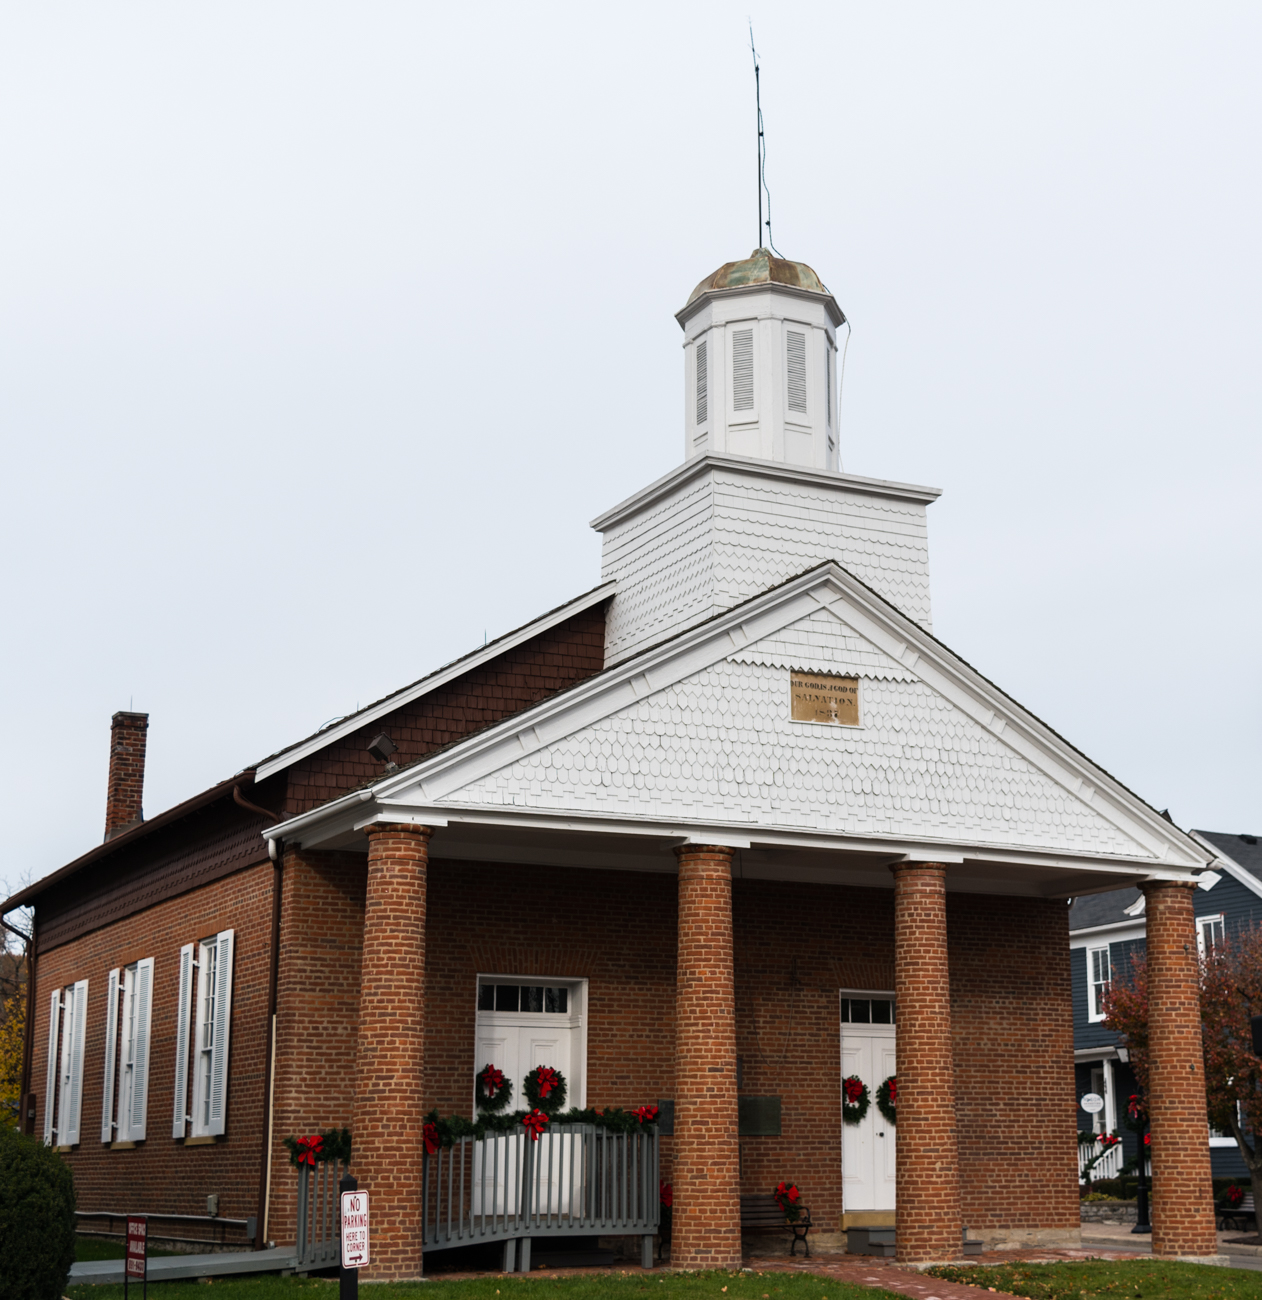 LANDMARK: Universalist Church / BACKGROUND: It was built in 1837 as an alternative to the Hopewell-Montgomery Presbyterian church. The church bell served as the town's fire alarm for many years. / IMAGE: Phil Armstrong, Cincinnati Refined / Published: 11.26.16